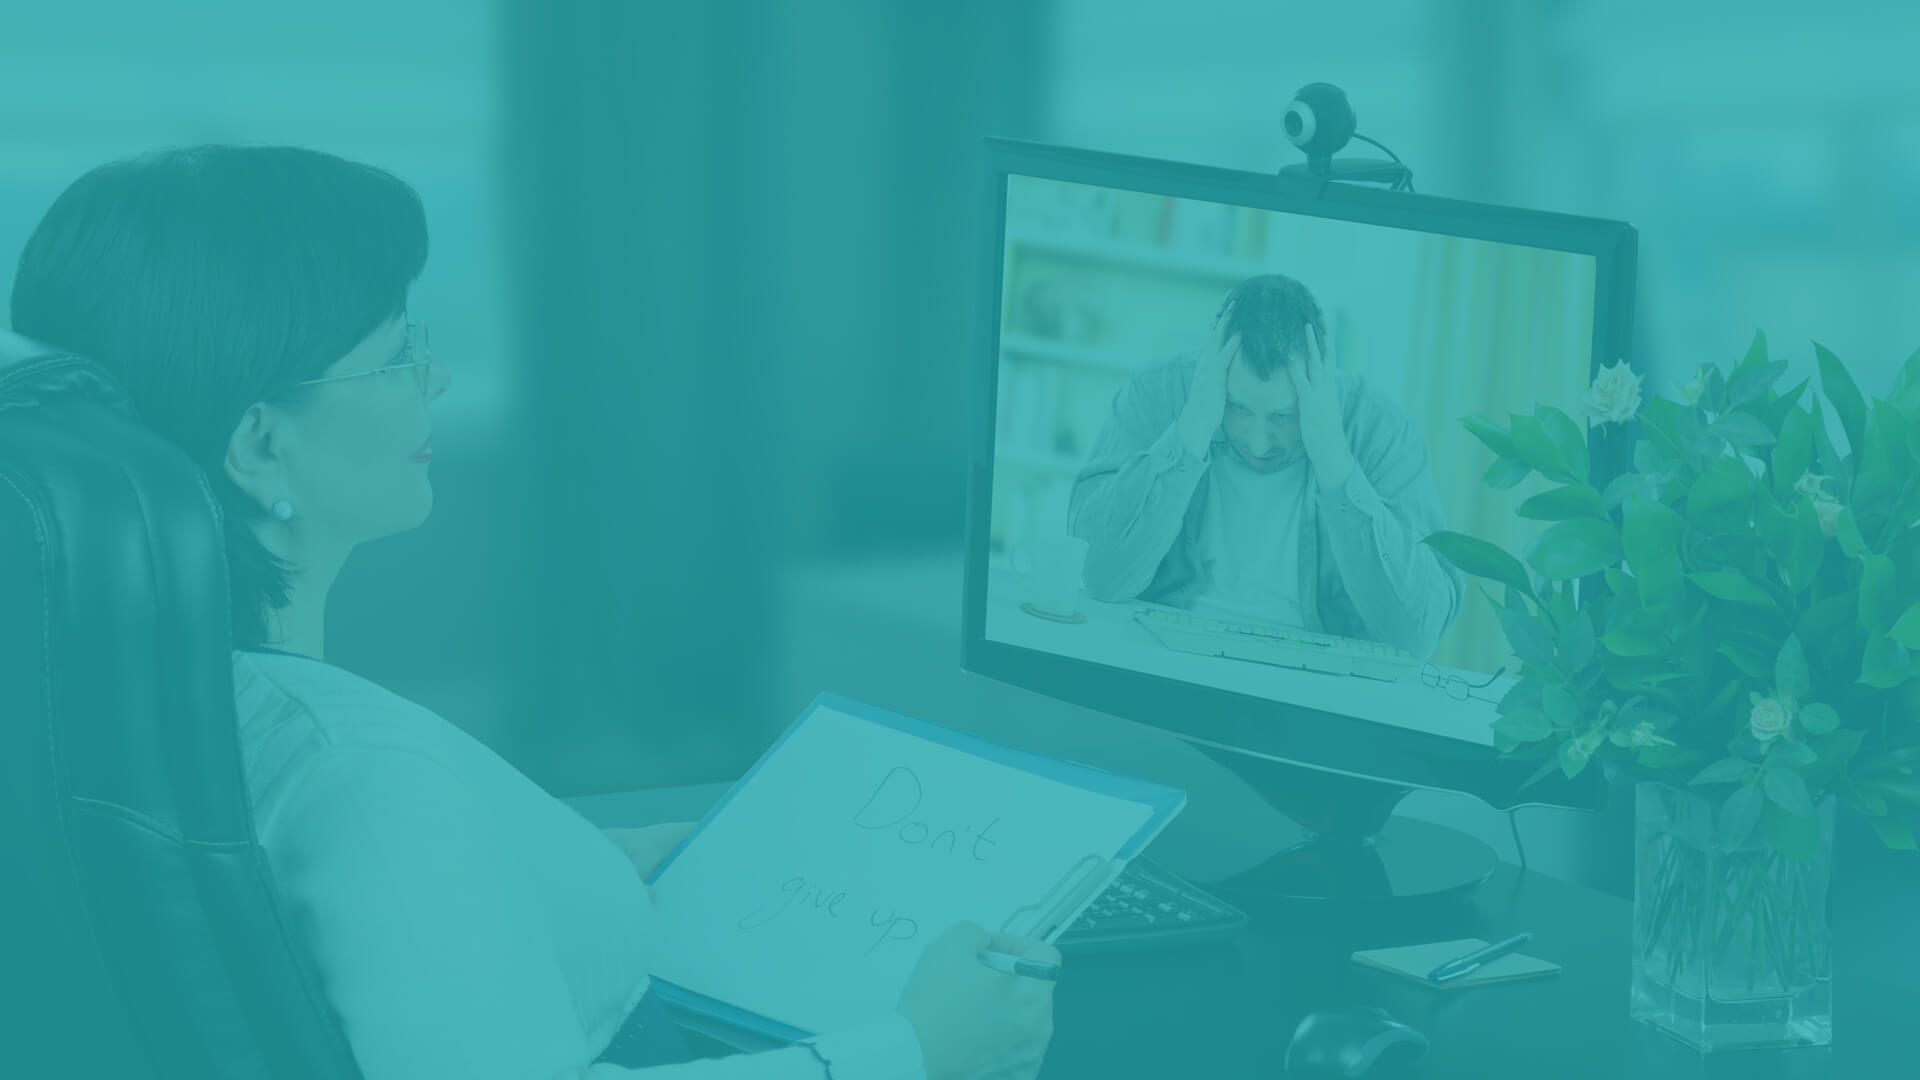 dr. assisting patient remotely with telehealth technology